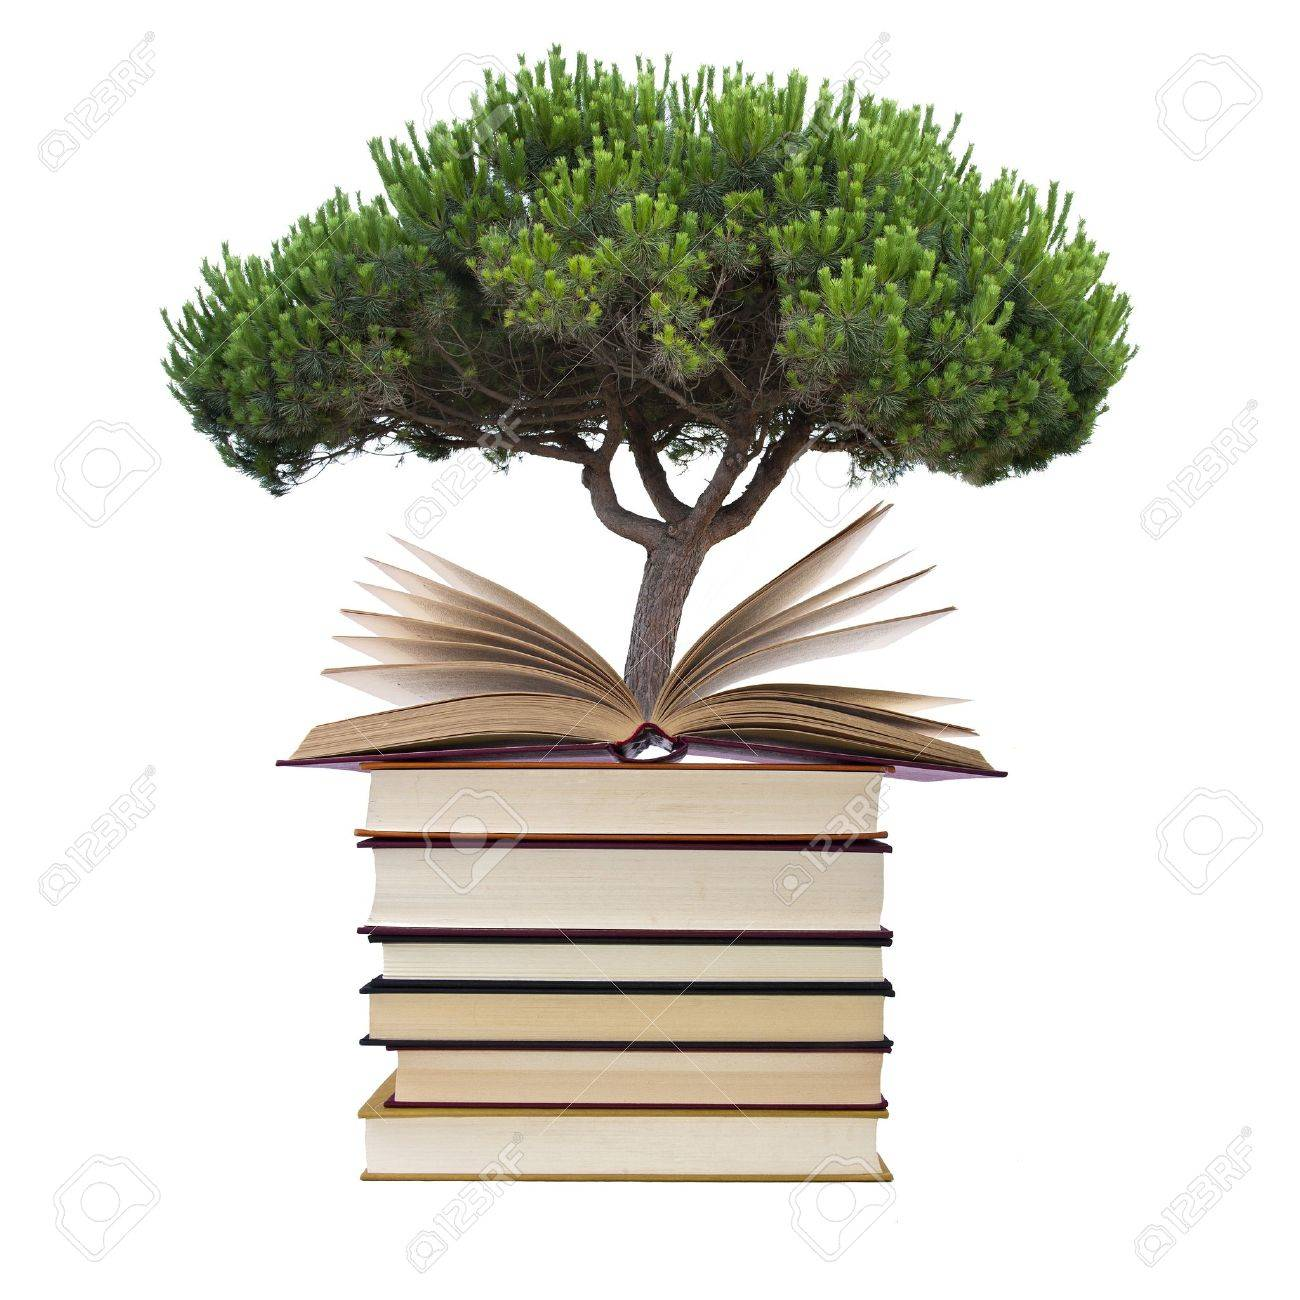 books with tree isolated on white background - 14777156